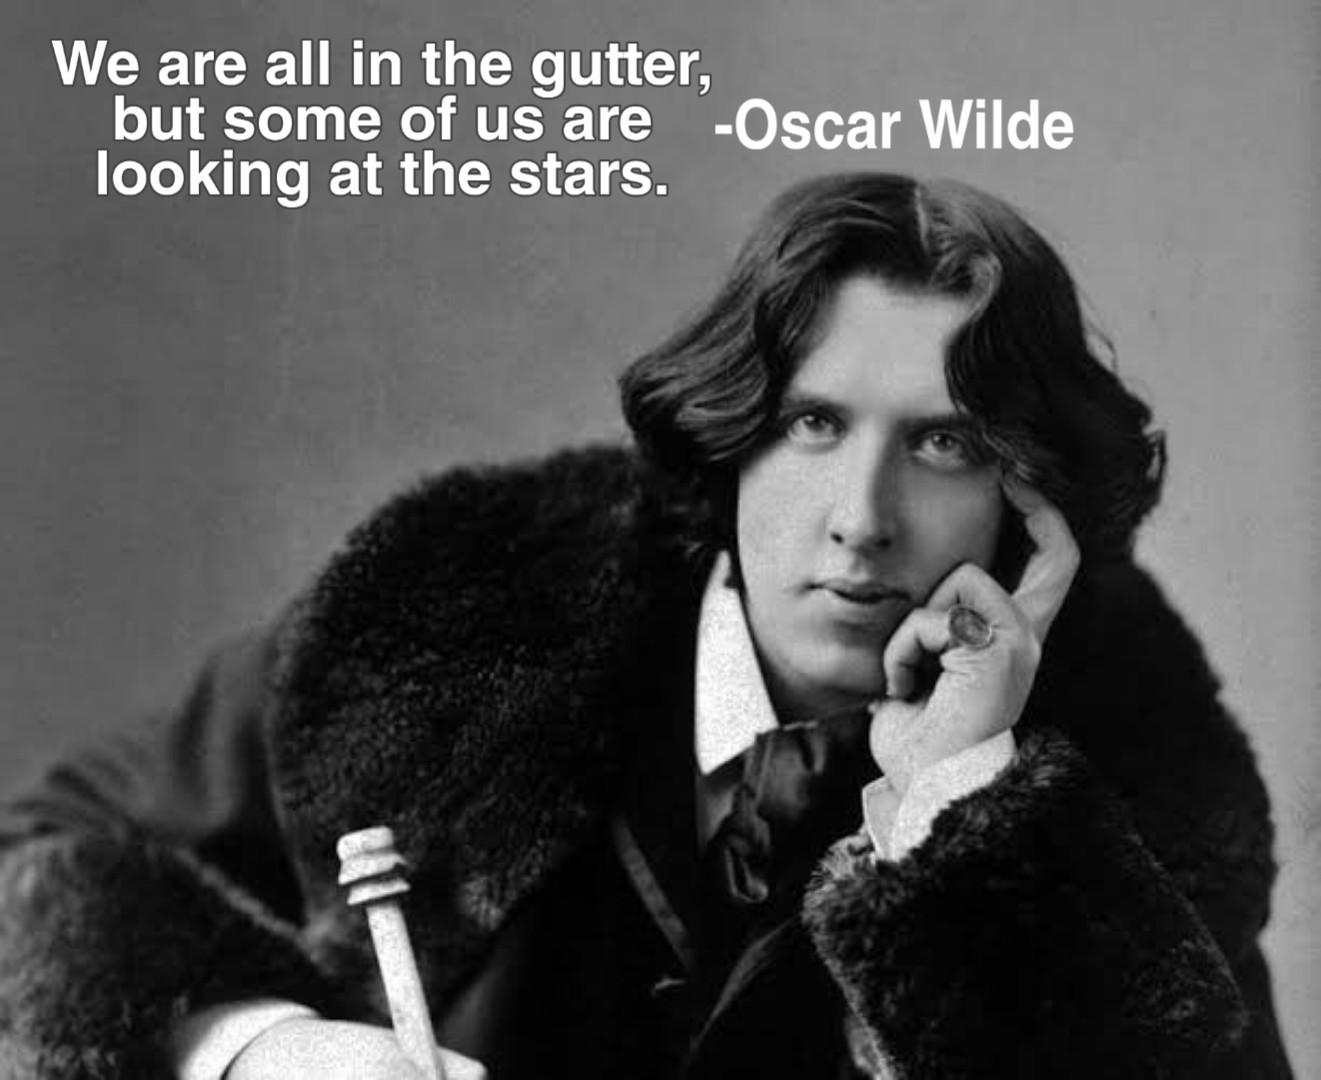 """We are all in the gutter, but some of us are looking at the stars."" -Oscar Wilde [1321×1080]"